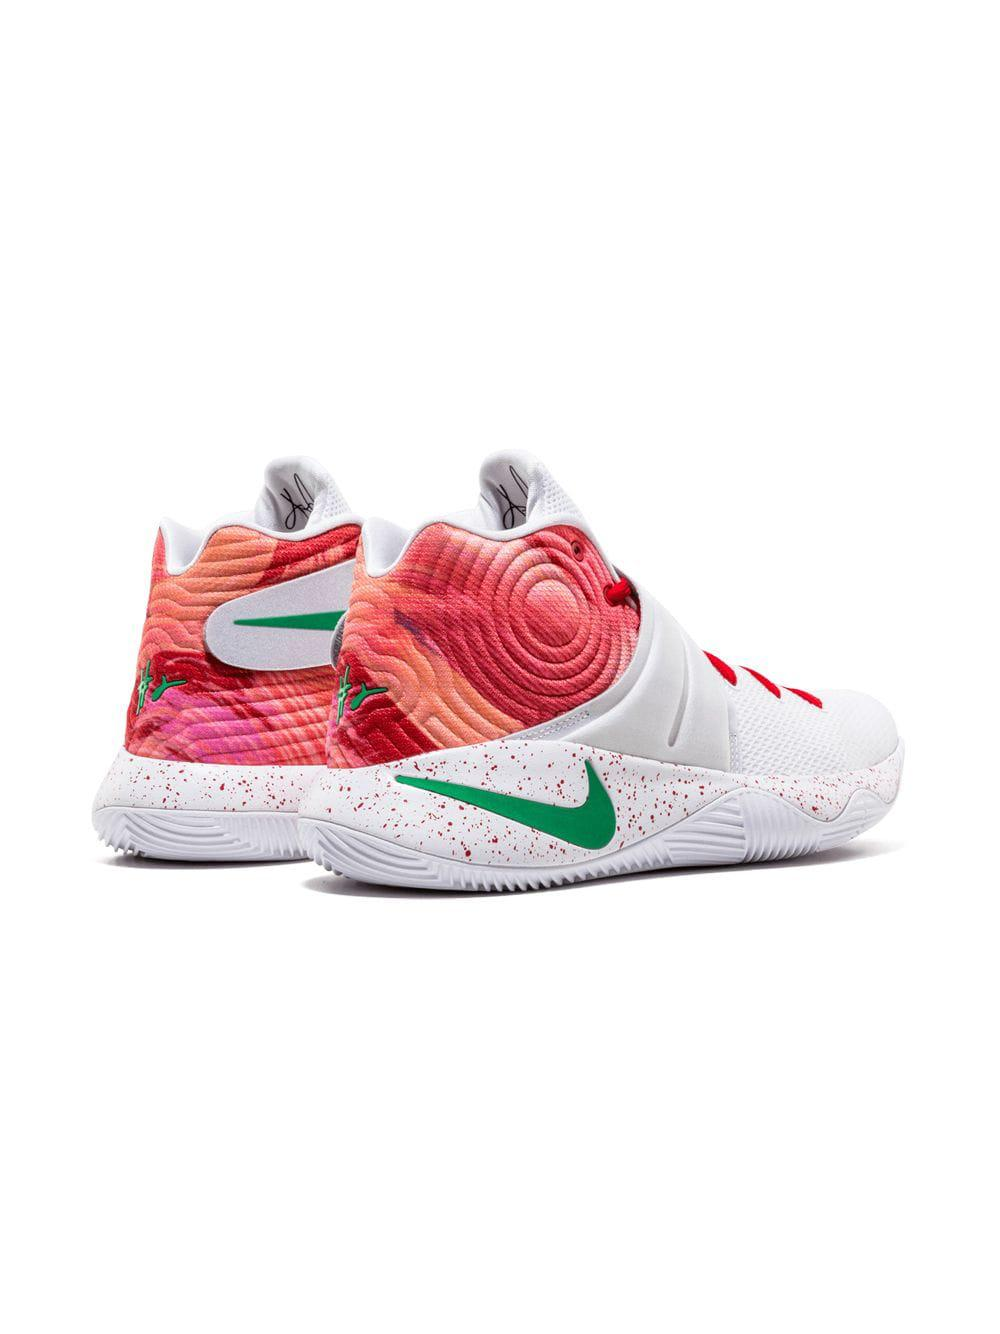 cf751601e565 Lyst - Nike Kyrie 2 Id Sneakers in White for Men